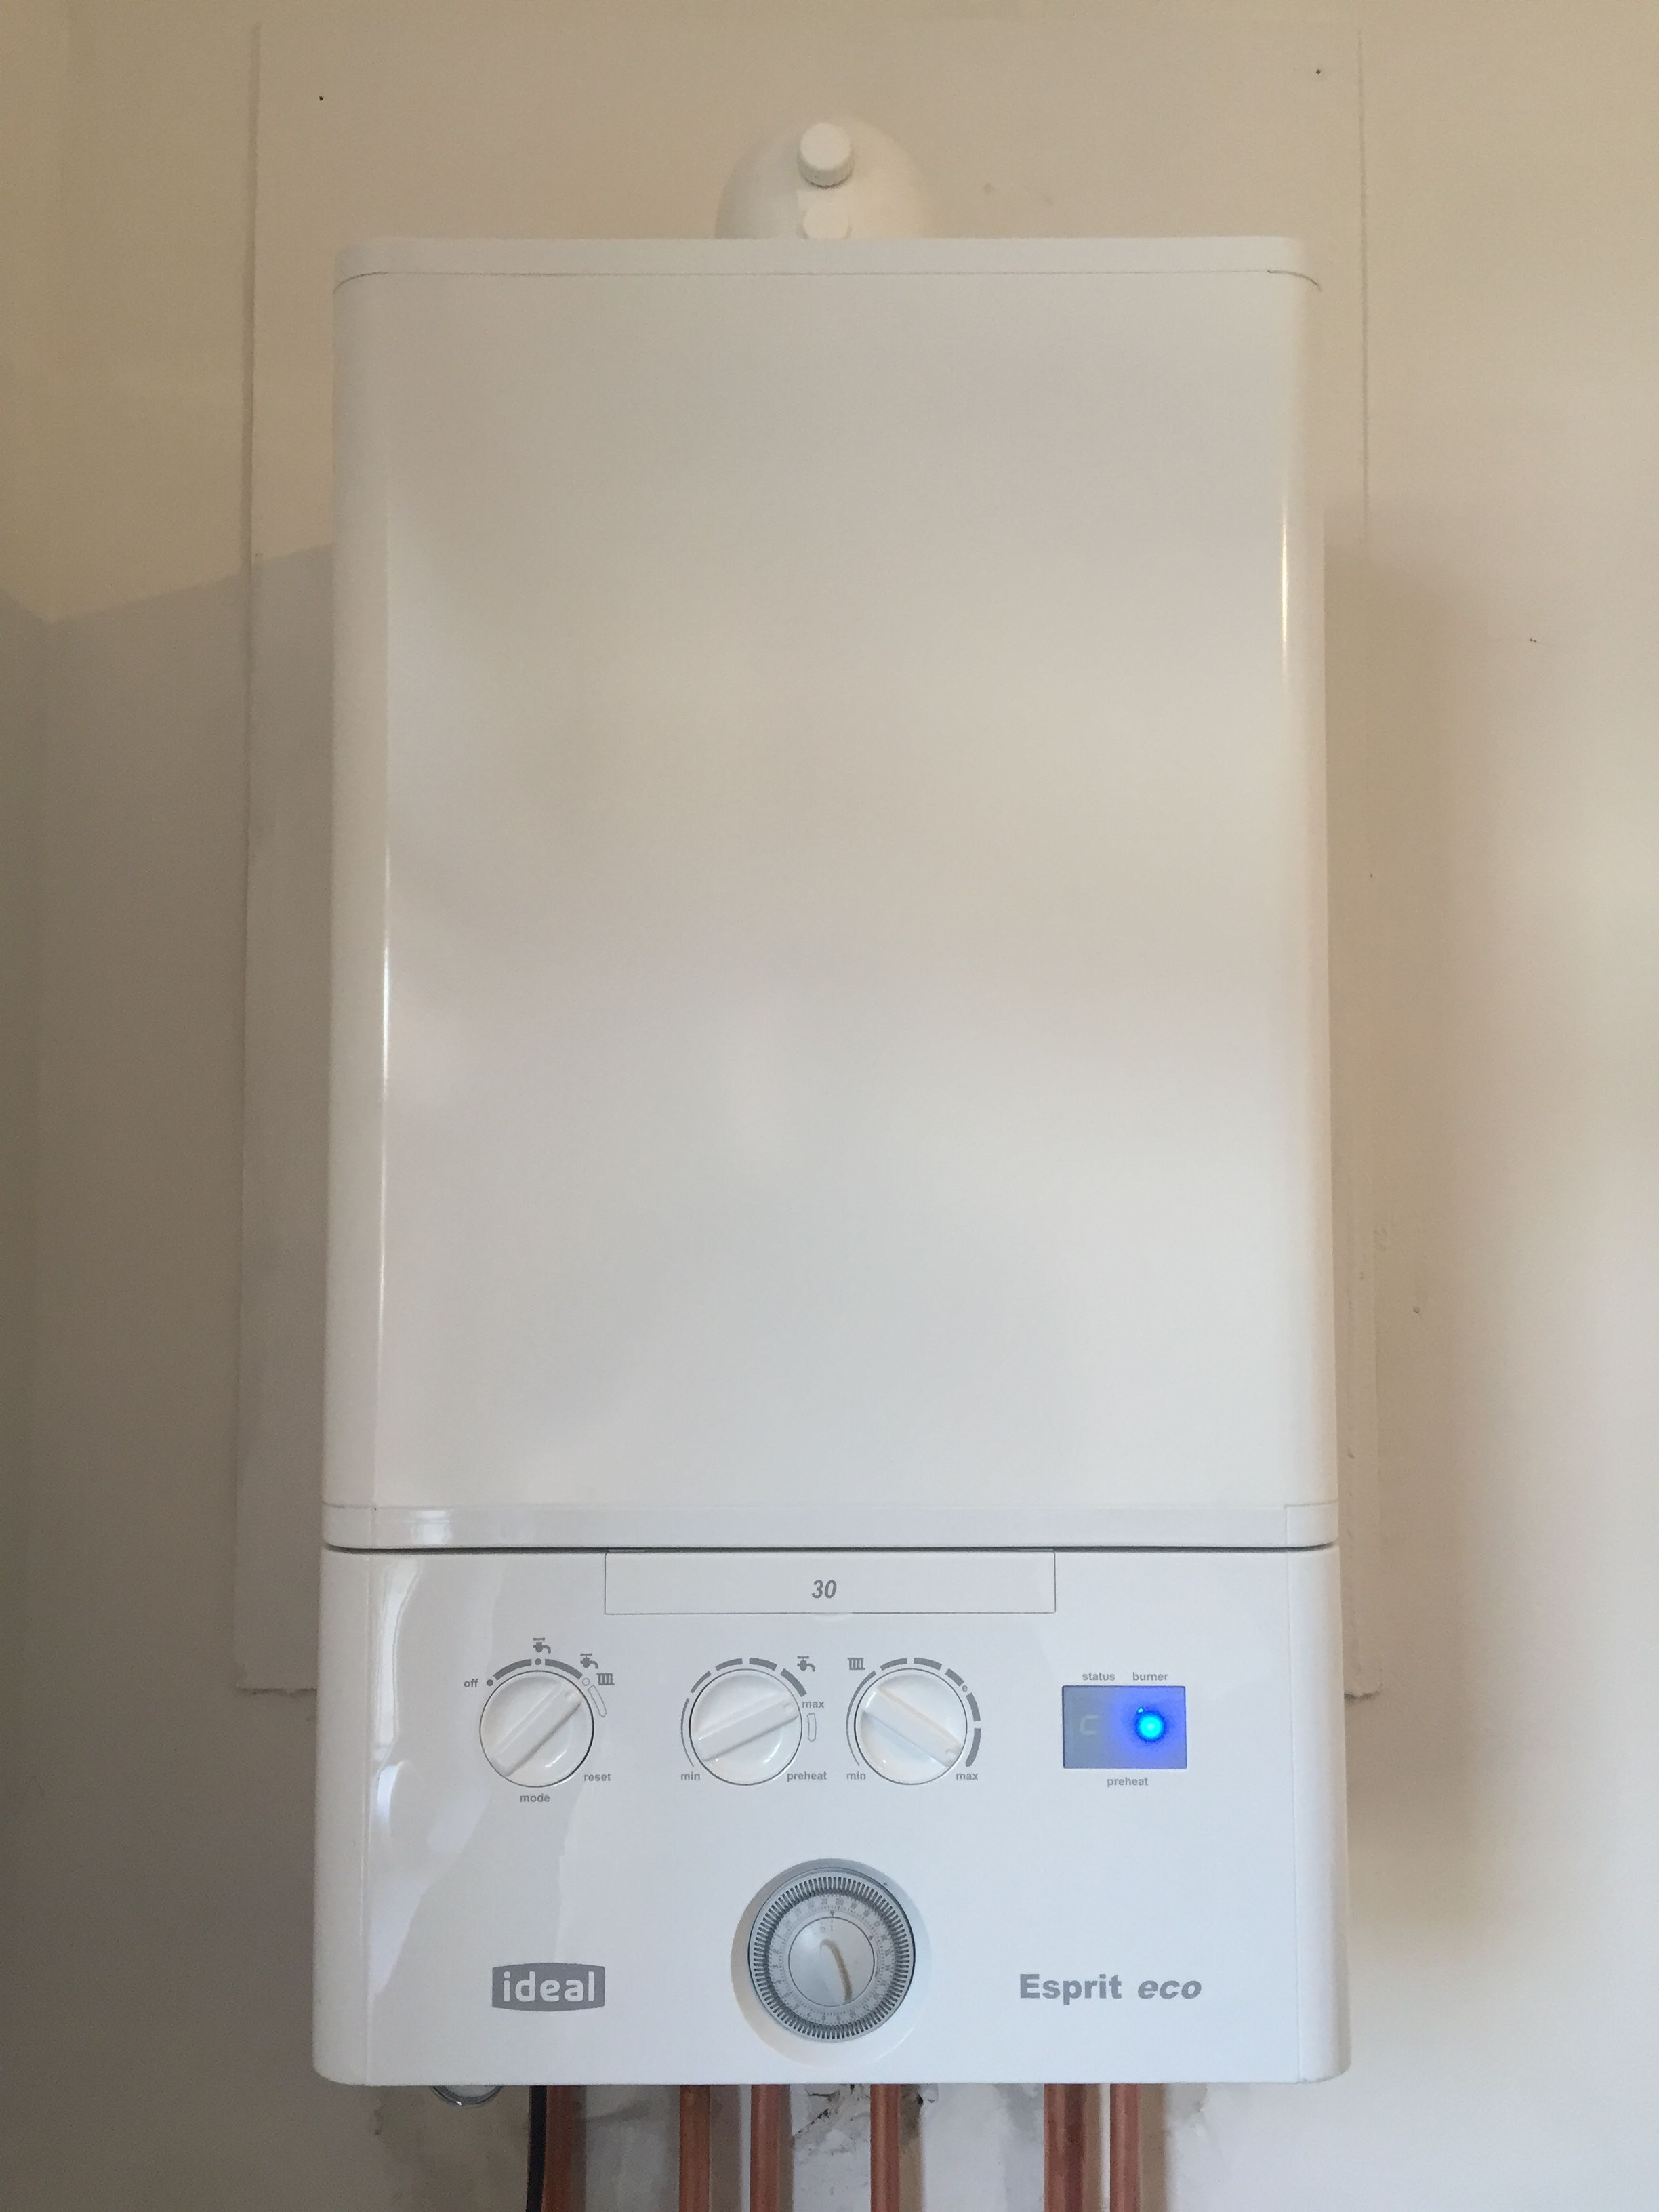 Replaced this 30 year old Glowworm with a Worcester Bosch 28Ri ...